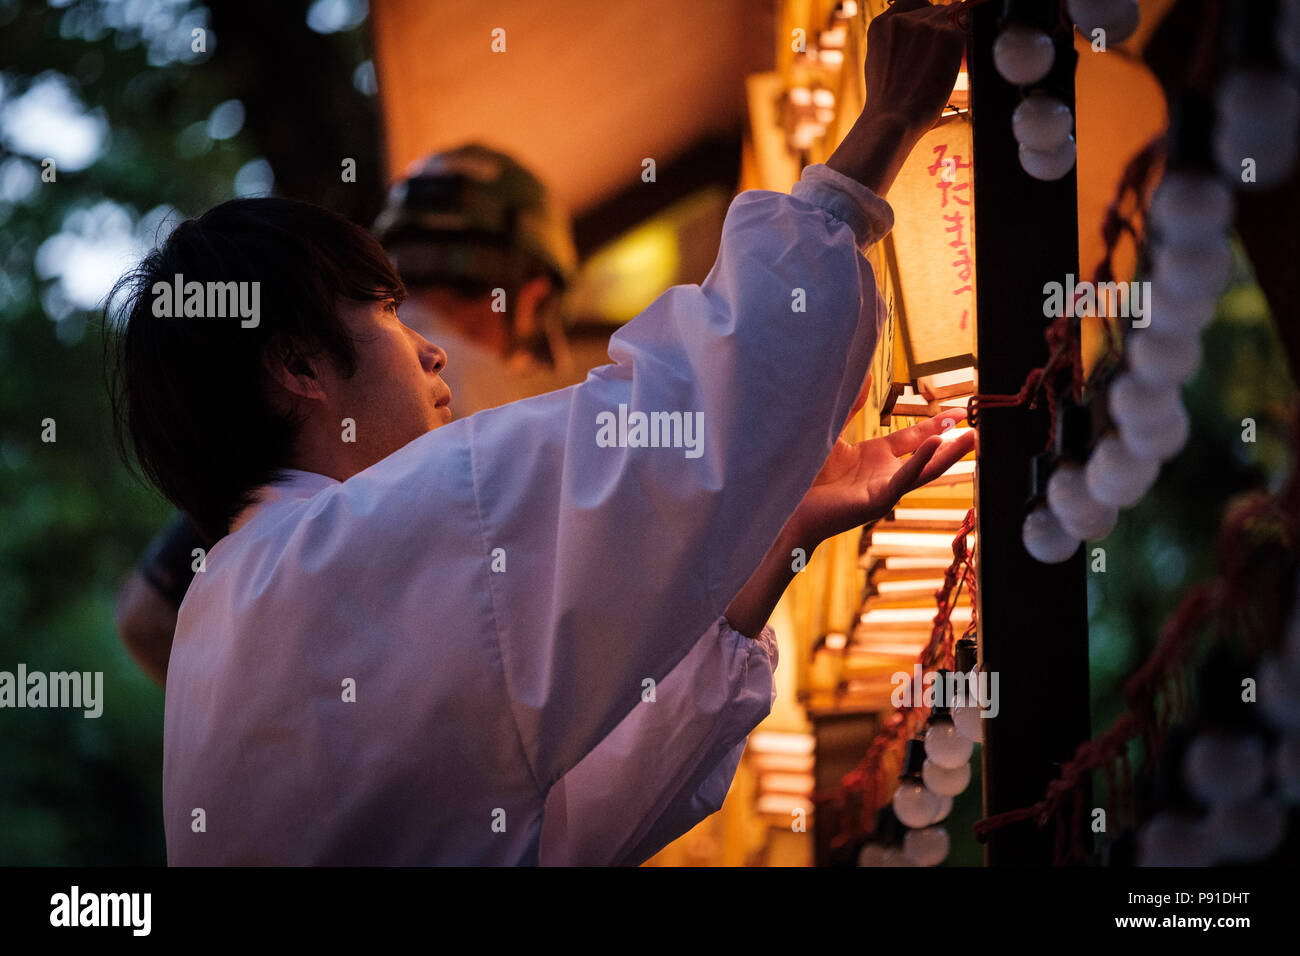 Tokyo, Japan, 13 July 2018. Yasukuni shrine staff hangs a lit paper lanterns during the Mitama Matsuri summer festival at Yasukuni Shrine on July 13, 2018 in Tokyo, Japan. The four-day traditional festival takes place during Tokyo's Bon period in July attracting about 300,000 visitors, according to the shrine. July 13, 2018 Credit: Nicolas Datiche/AFLO/Alamy Live News - Stock Image